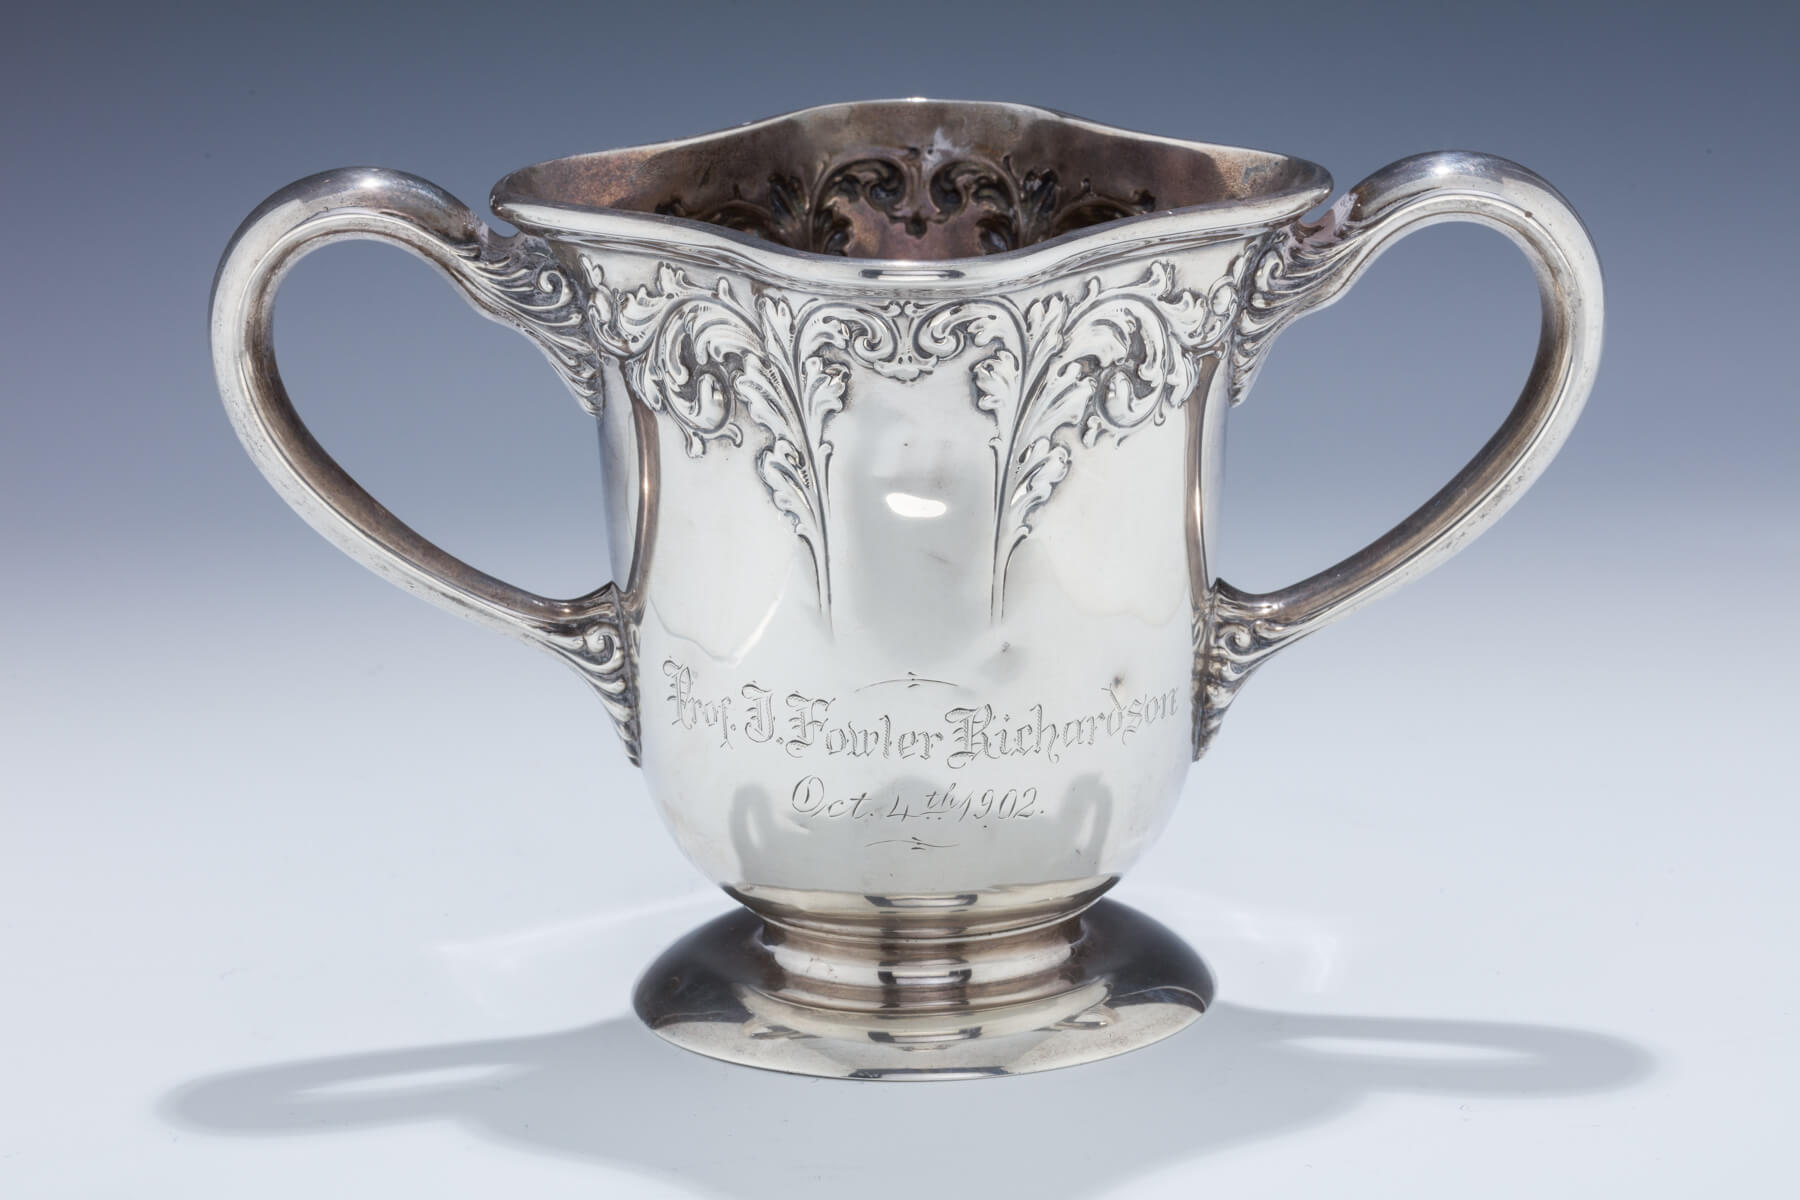 065. An Important Sterling Silver Two Handled Cup Given by the Hebrew Benevolent Congregation of Atlanta